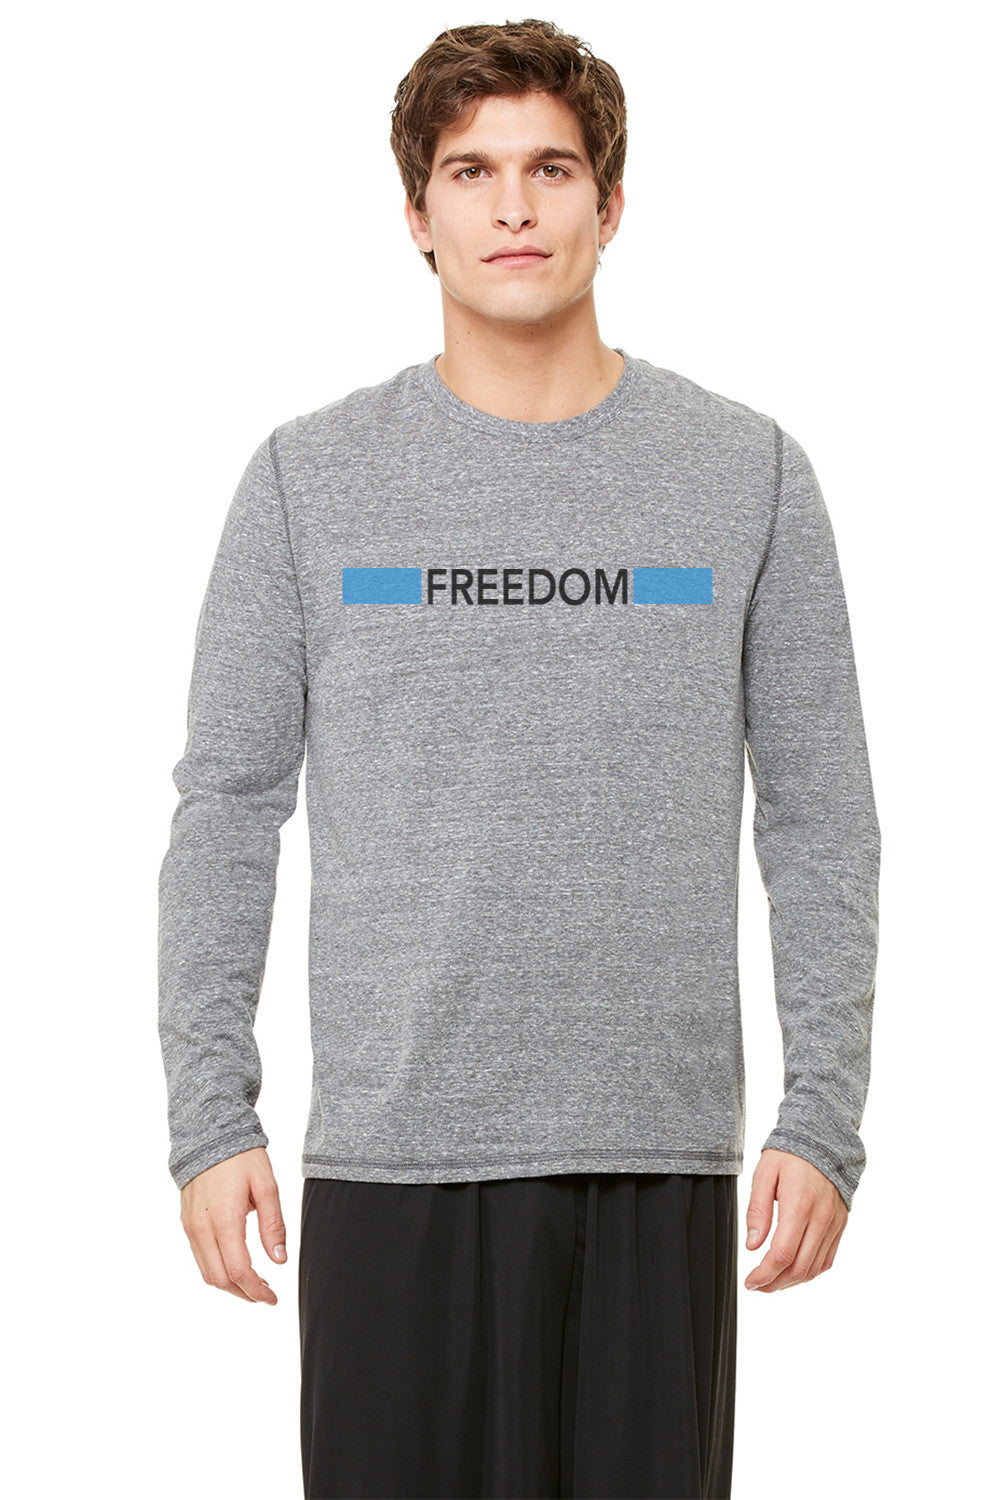 End it.  Men's Triblend Performance Long Sleeve Tee Freedom